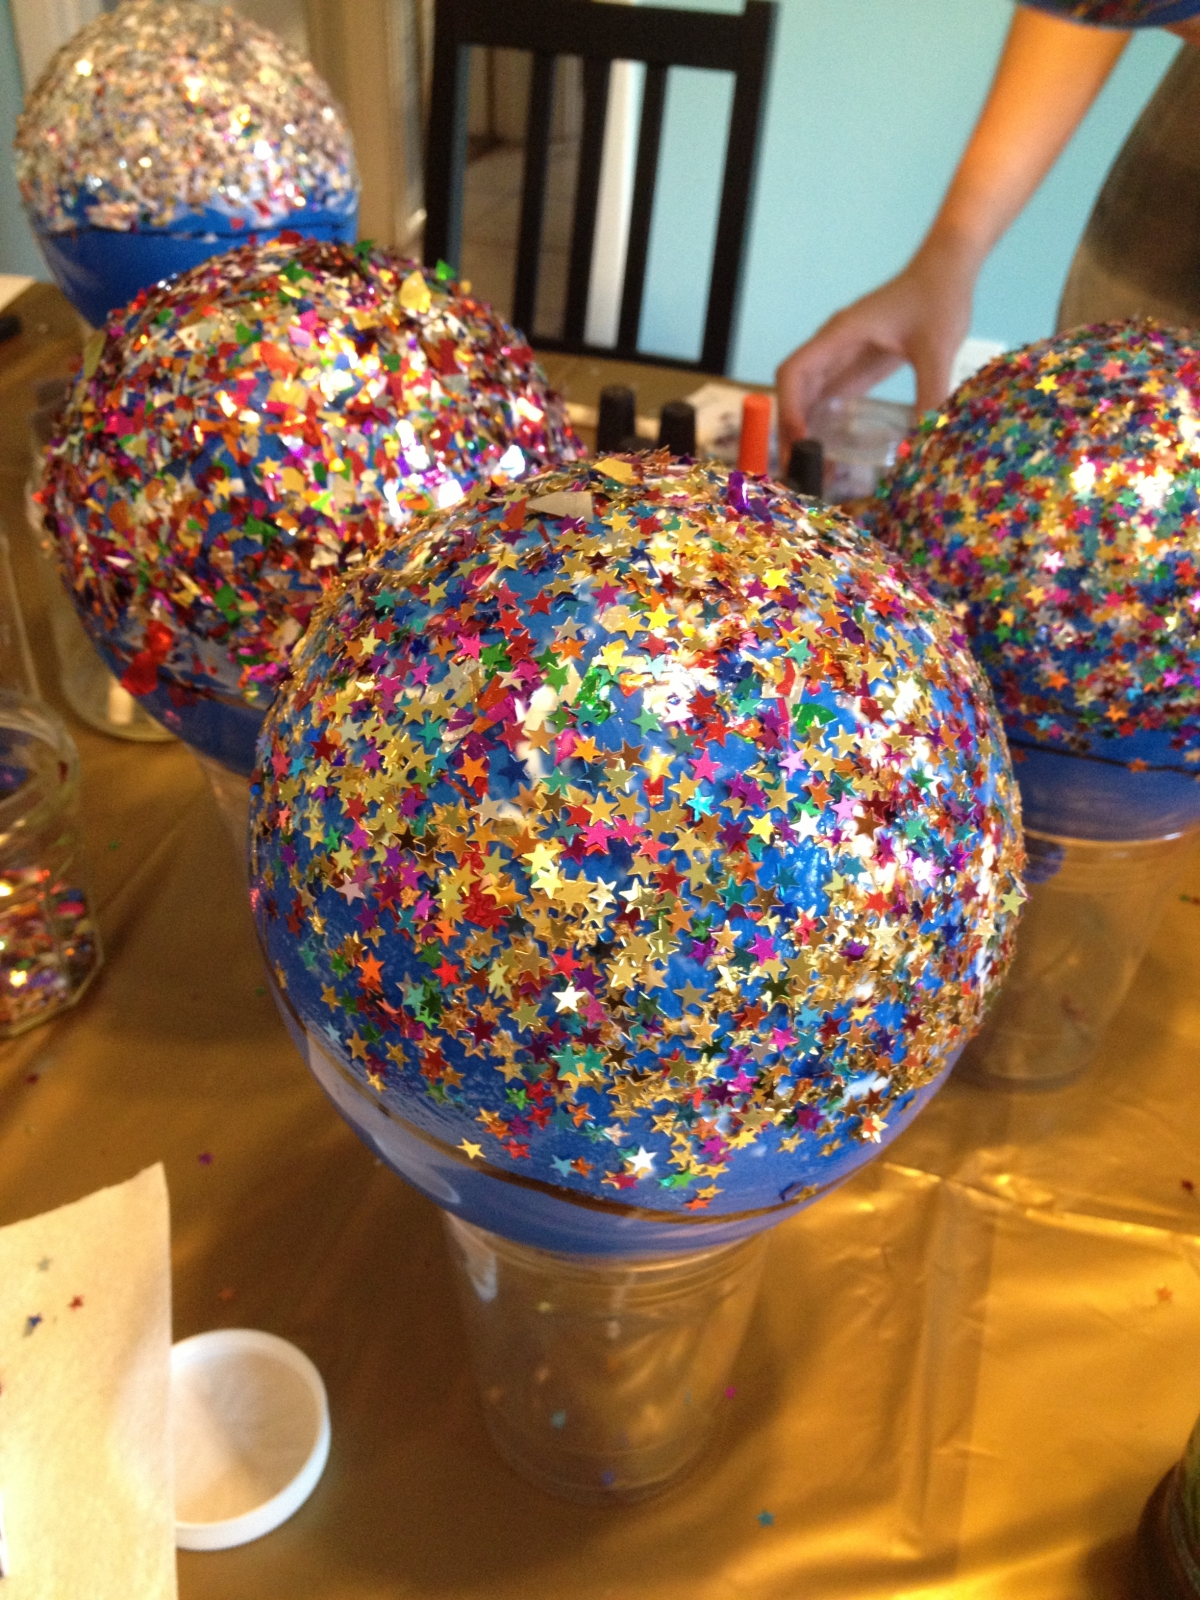 How To Make DIY Balloon Bowls For Easter Decorations